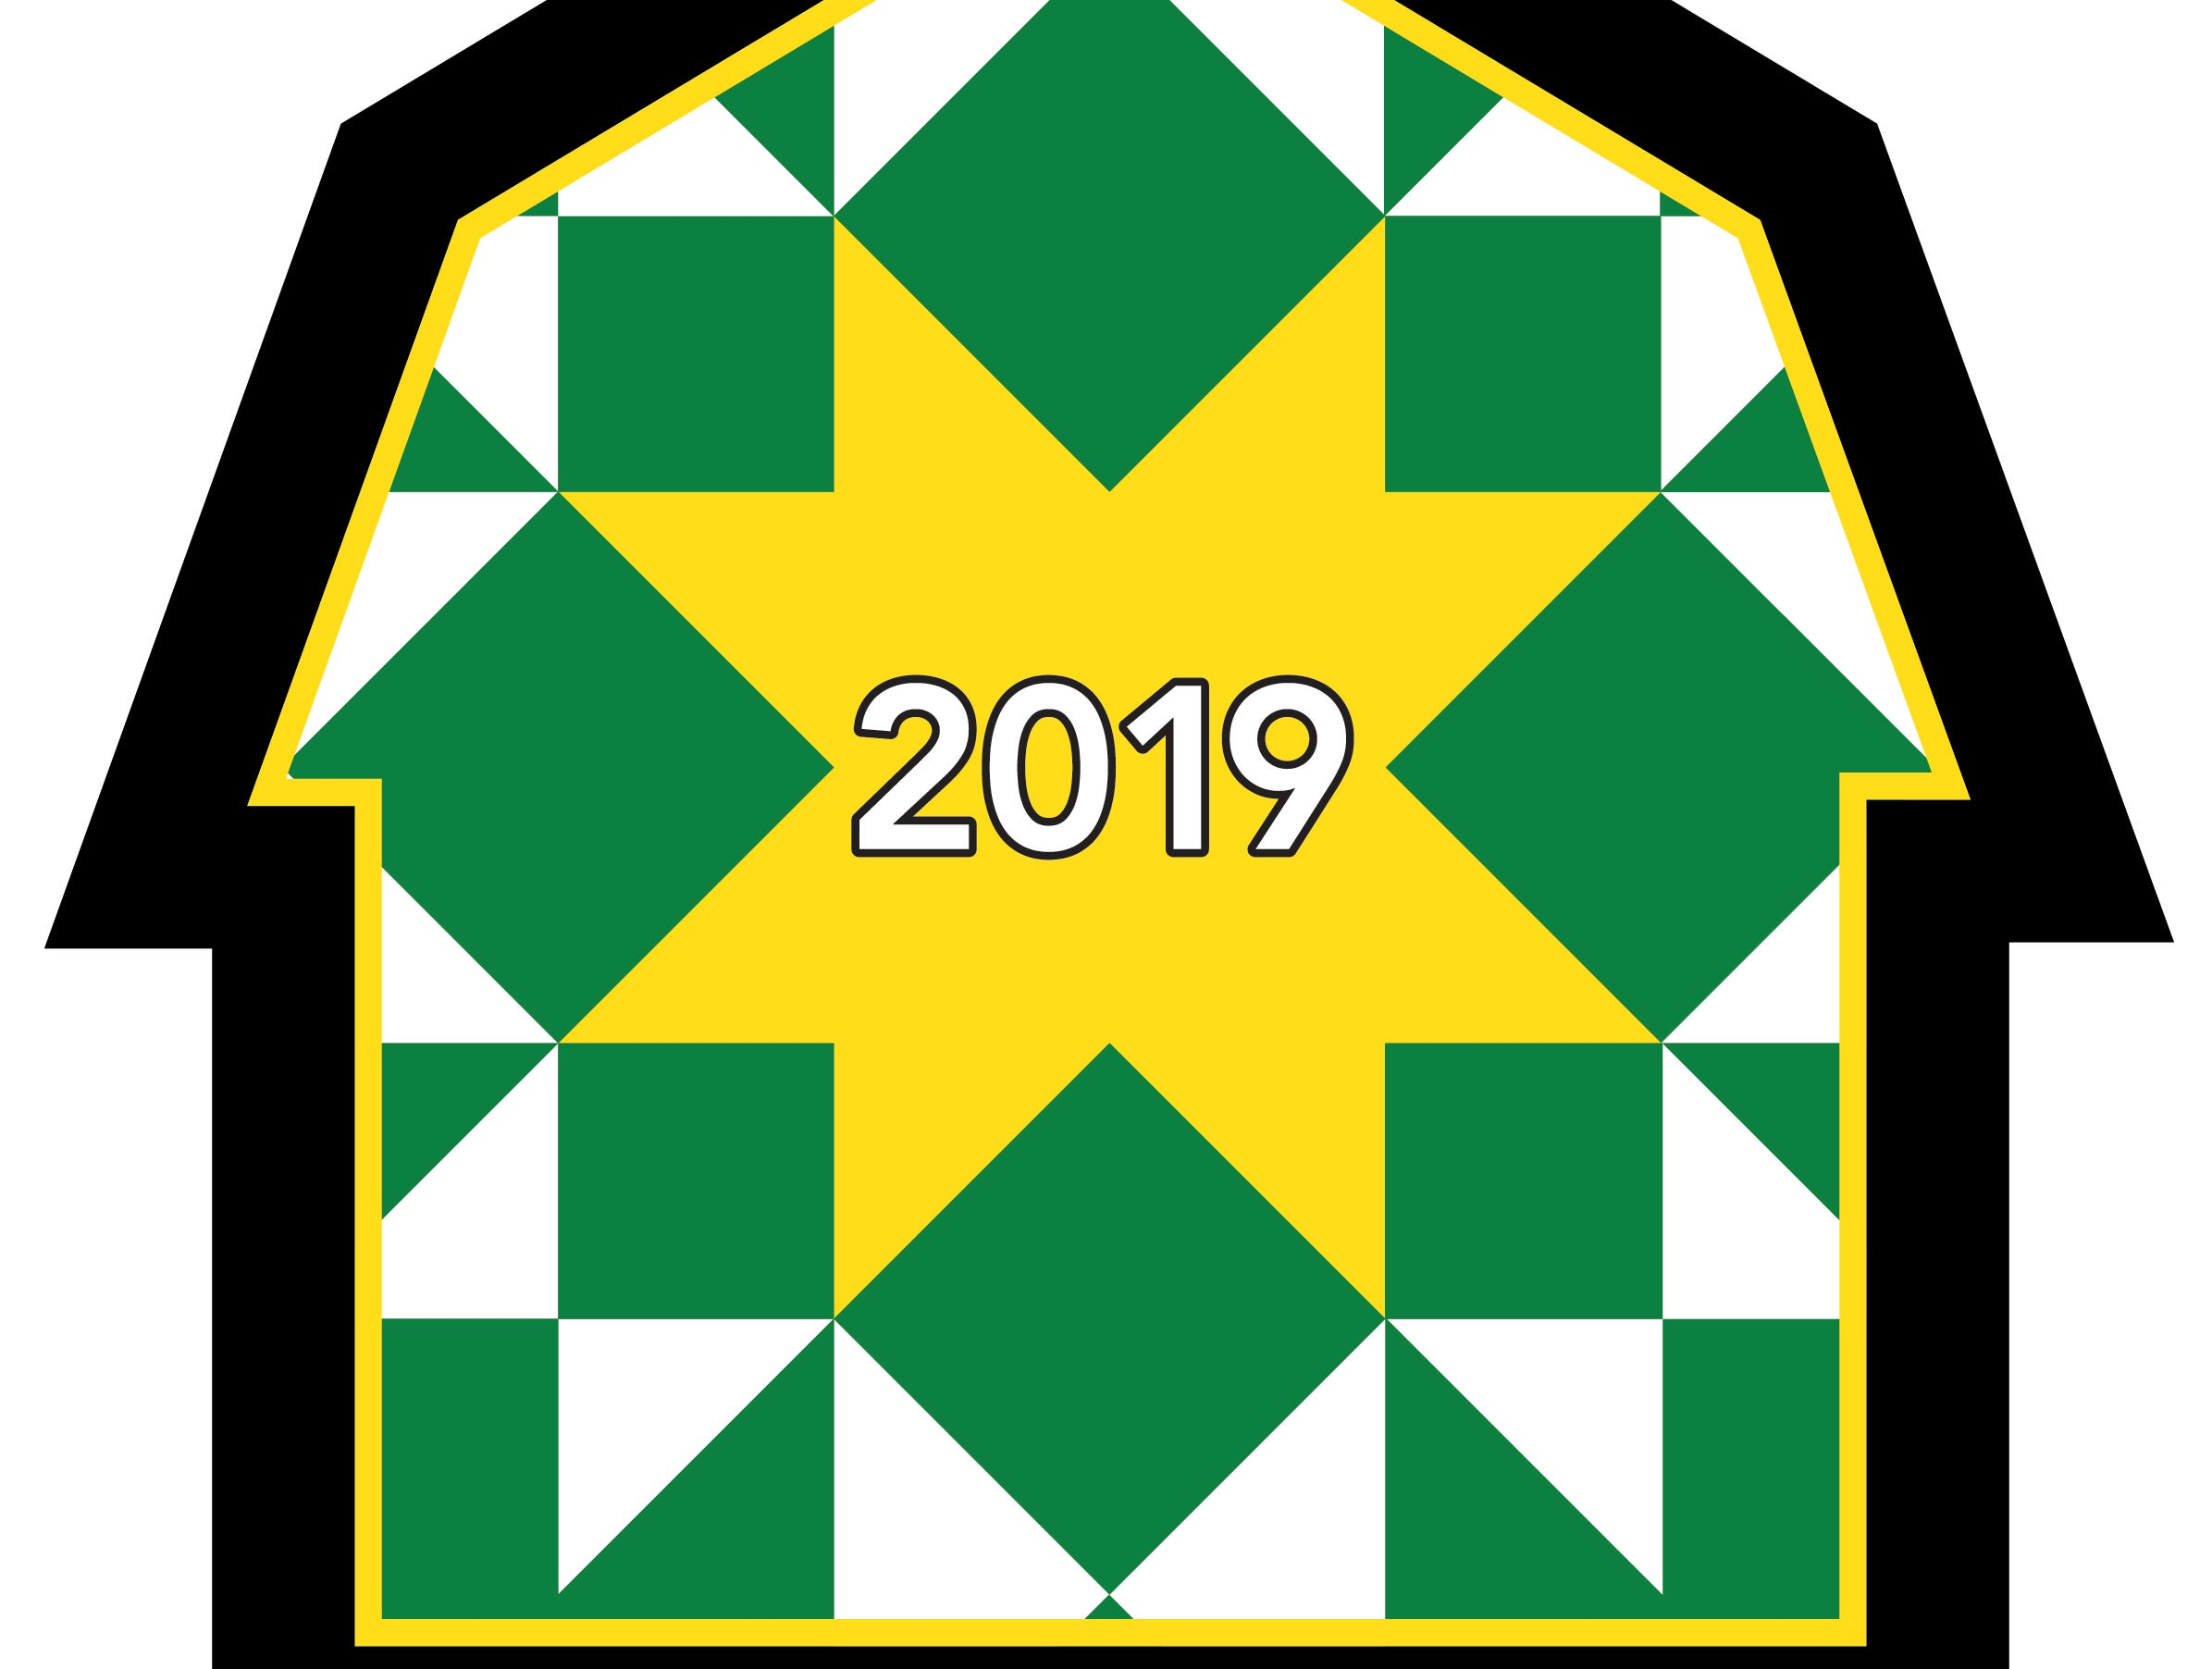 Quilts, always a beloved symbol of comfort, family, heritage and community provide a warm invitation to the rural countryside of Green County.